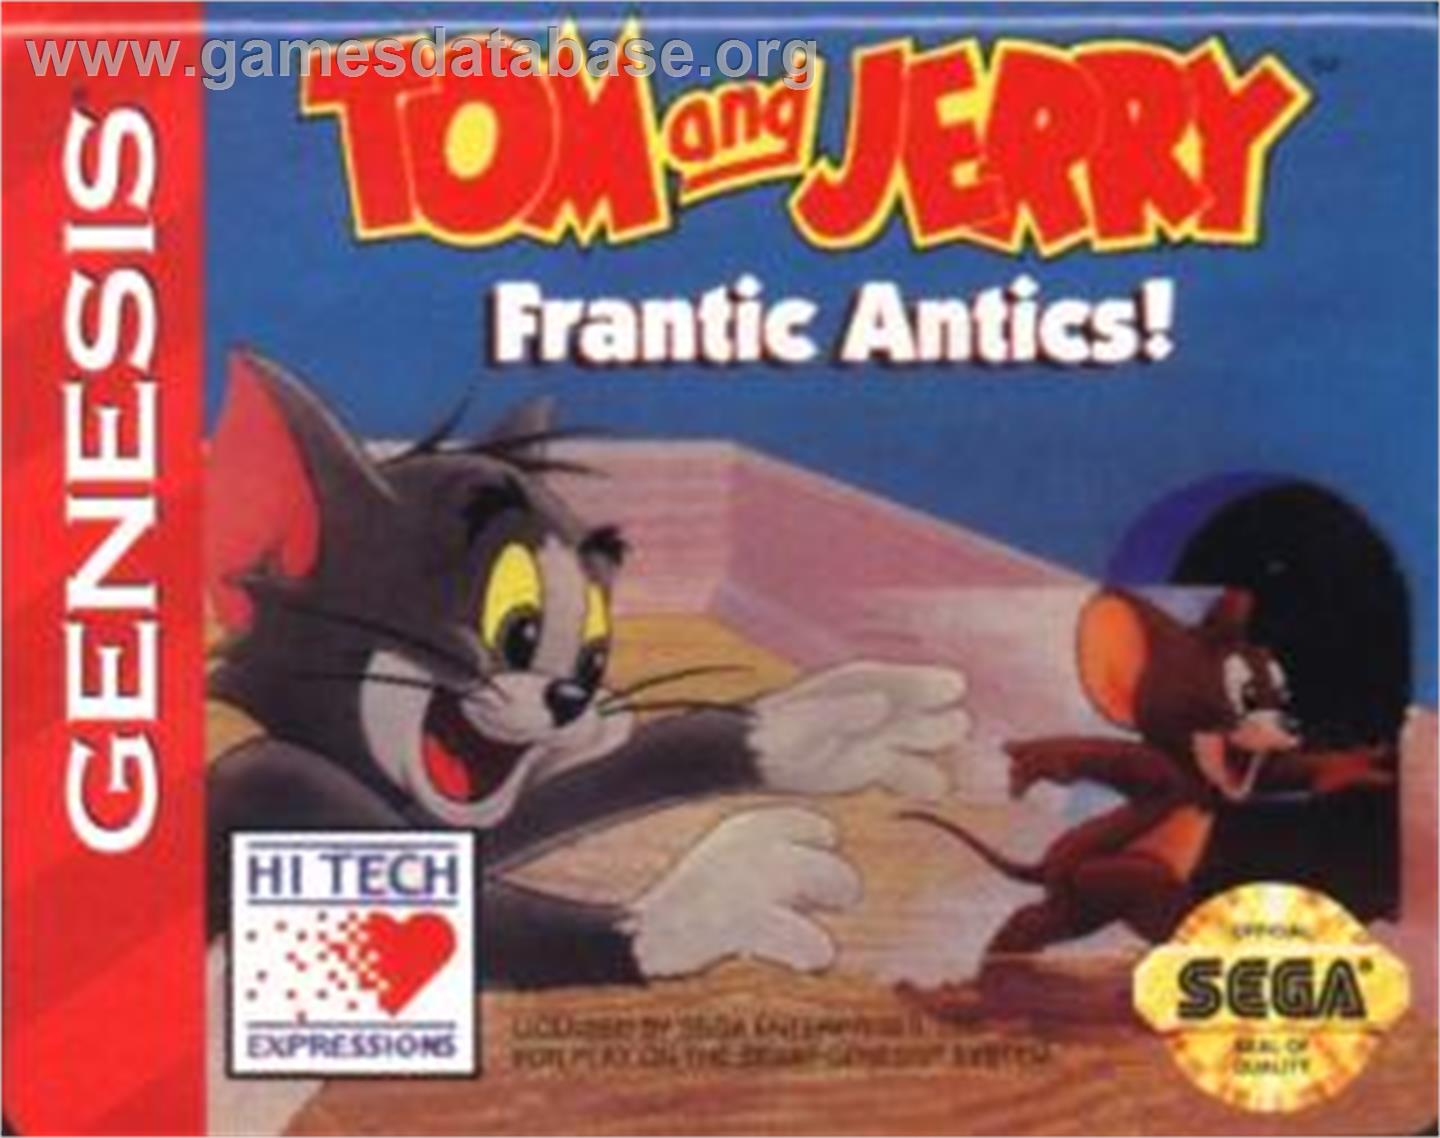 WHY ARE THE FORUMS SO QUIET? Tom_and_Jerry_-_Frantic_Antics_-_1993_-_Altron